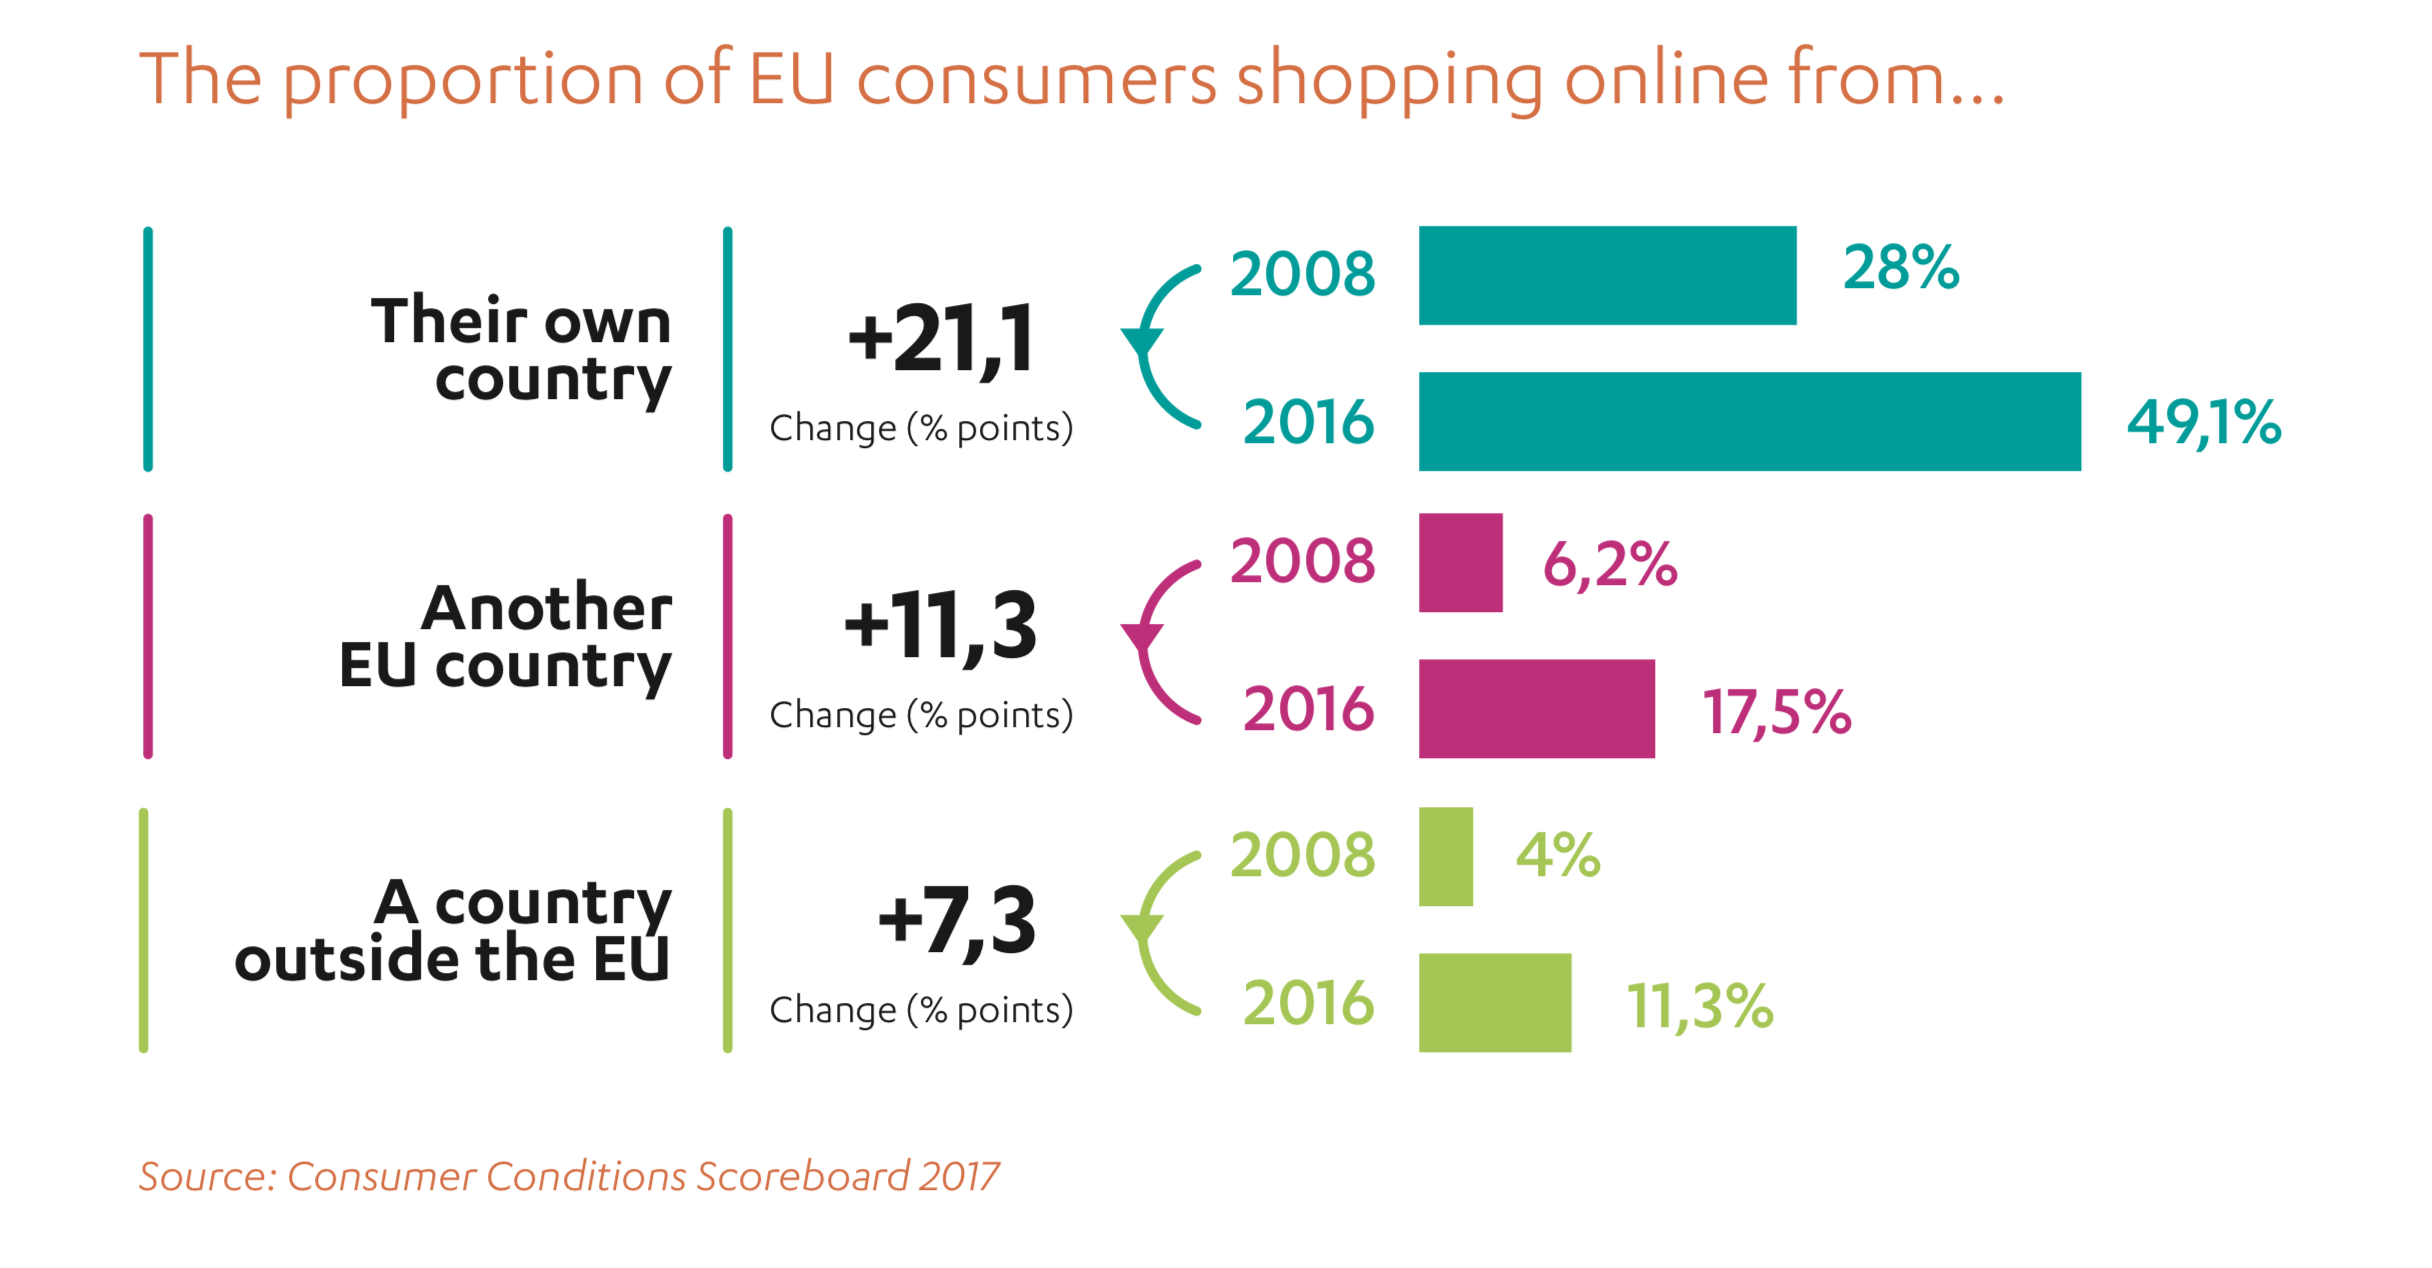 Cross-border online purchases are increasing, along with consumers' wariness